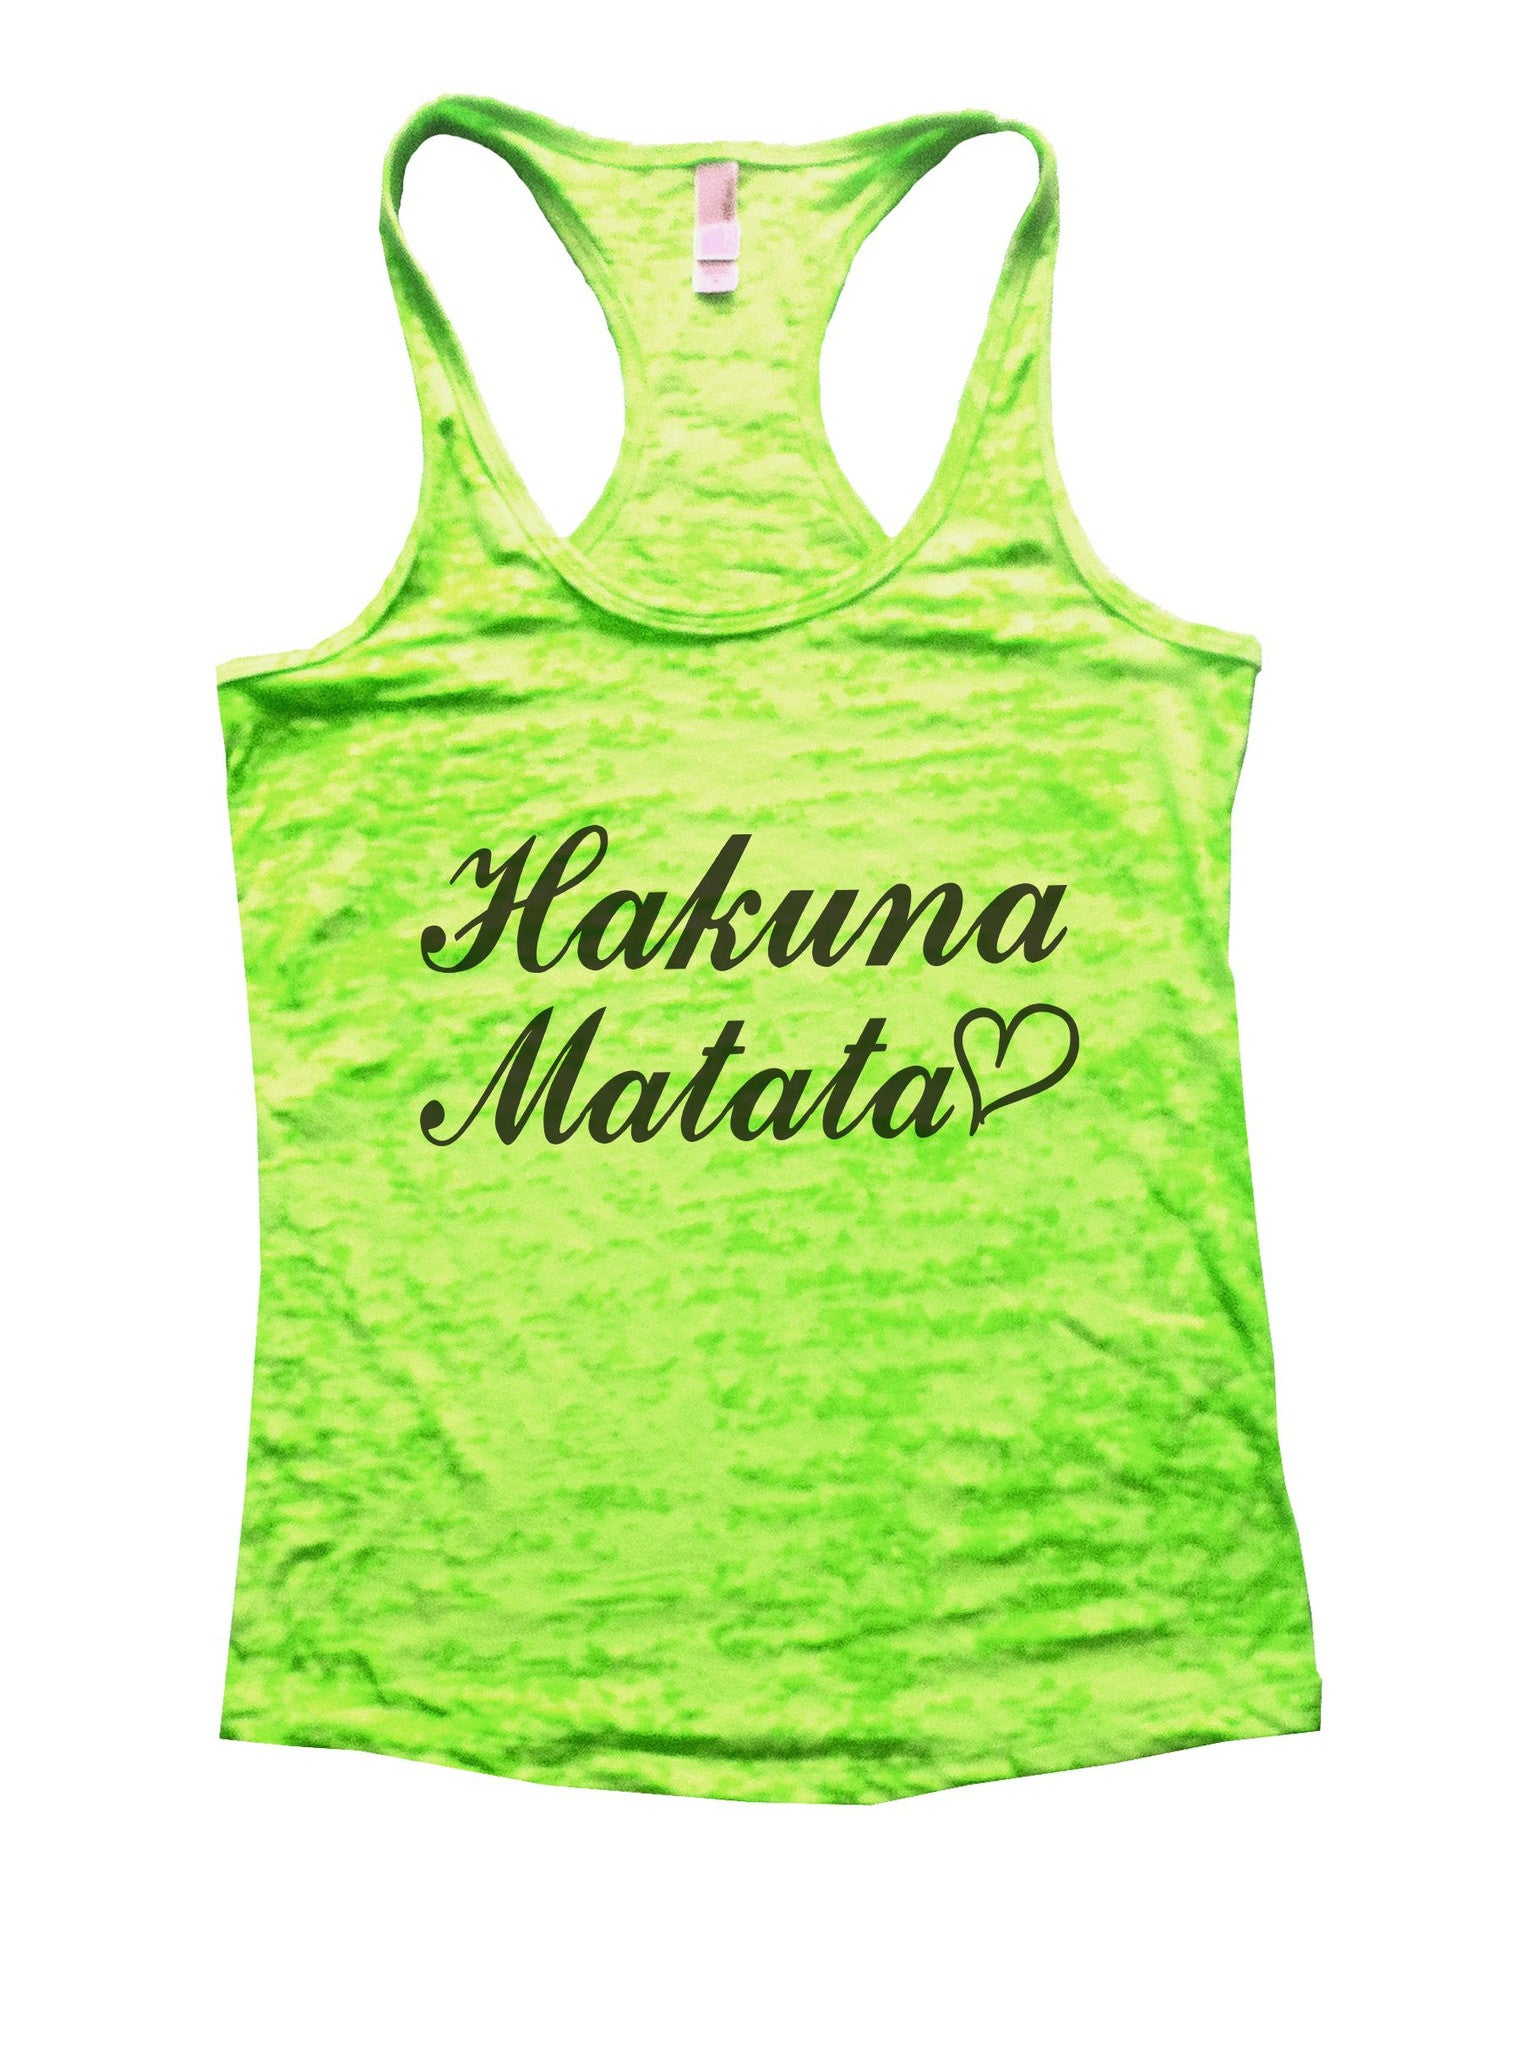 Hakuna Matata Burnout Tank Top By BurnoutTankTops.com - 937 - Funny Shirts Tank Tops Burnouts and Triblends  - 3